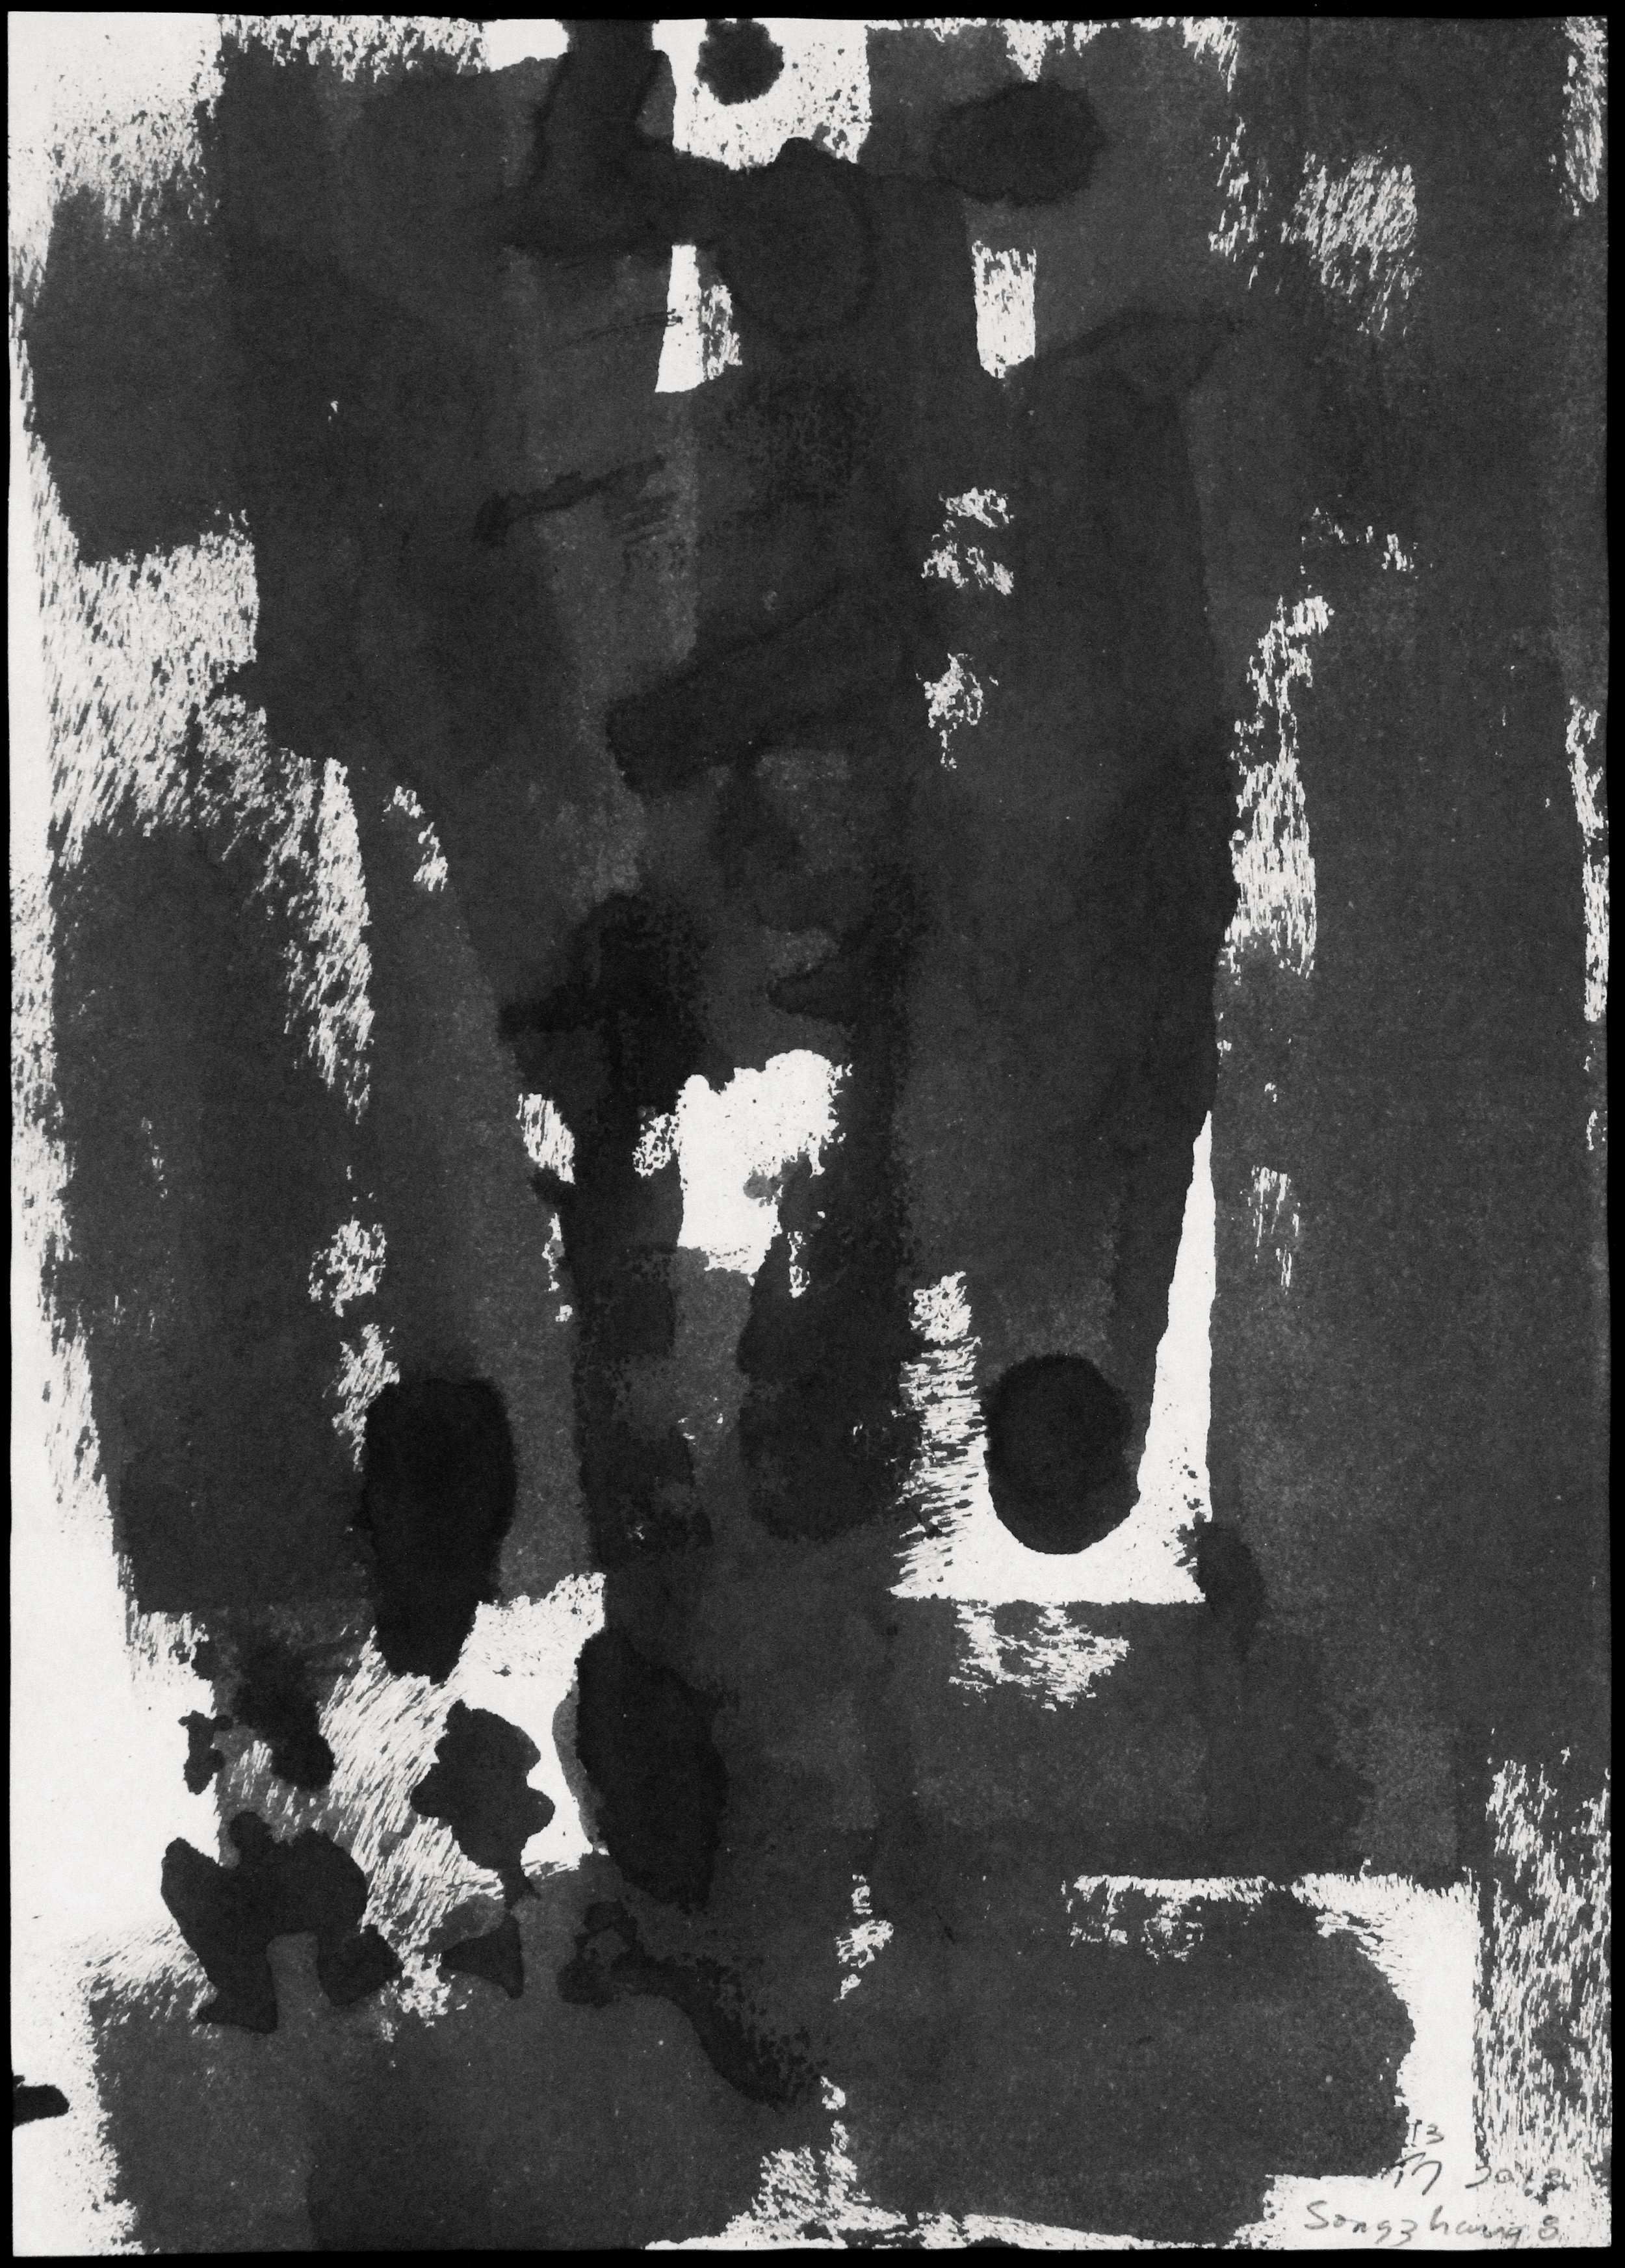 Songzhuang 8, 2013, Ink on Rice Paper, 21 in x 16 in